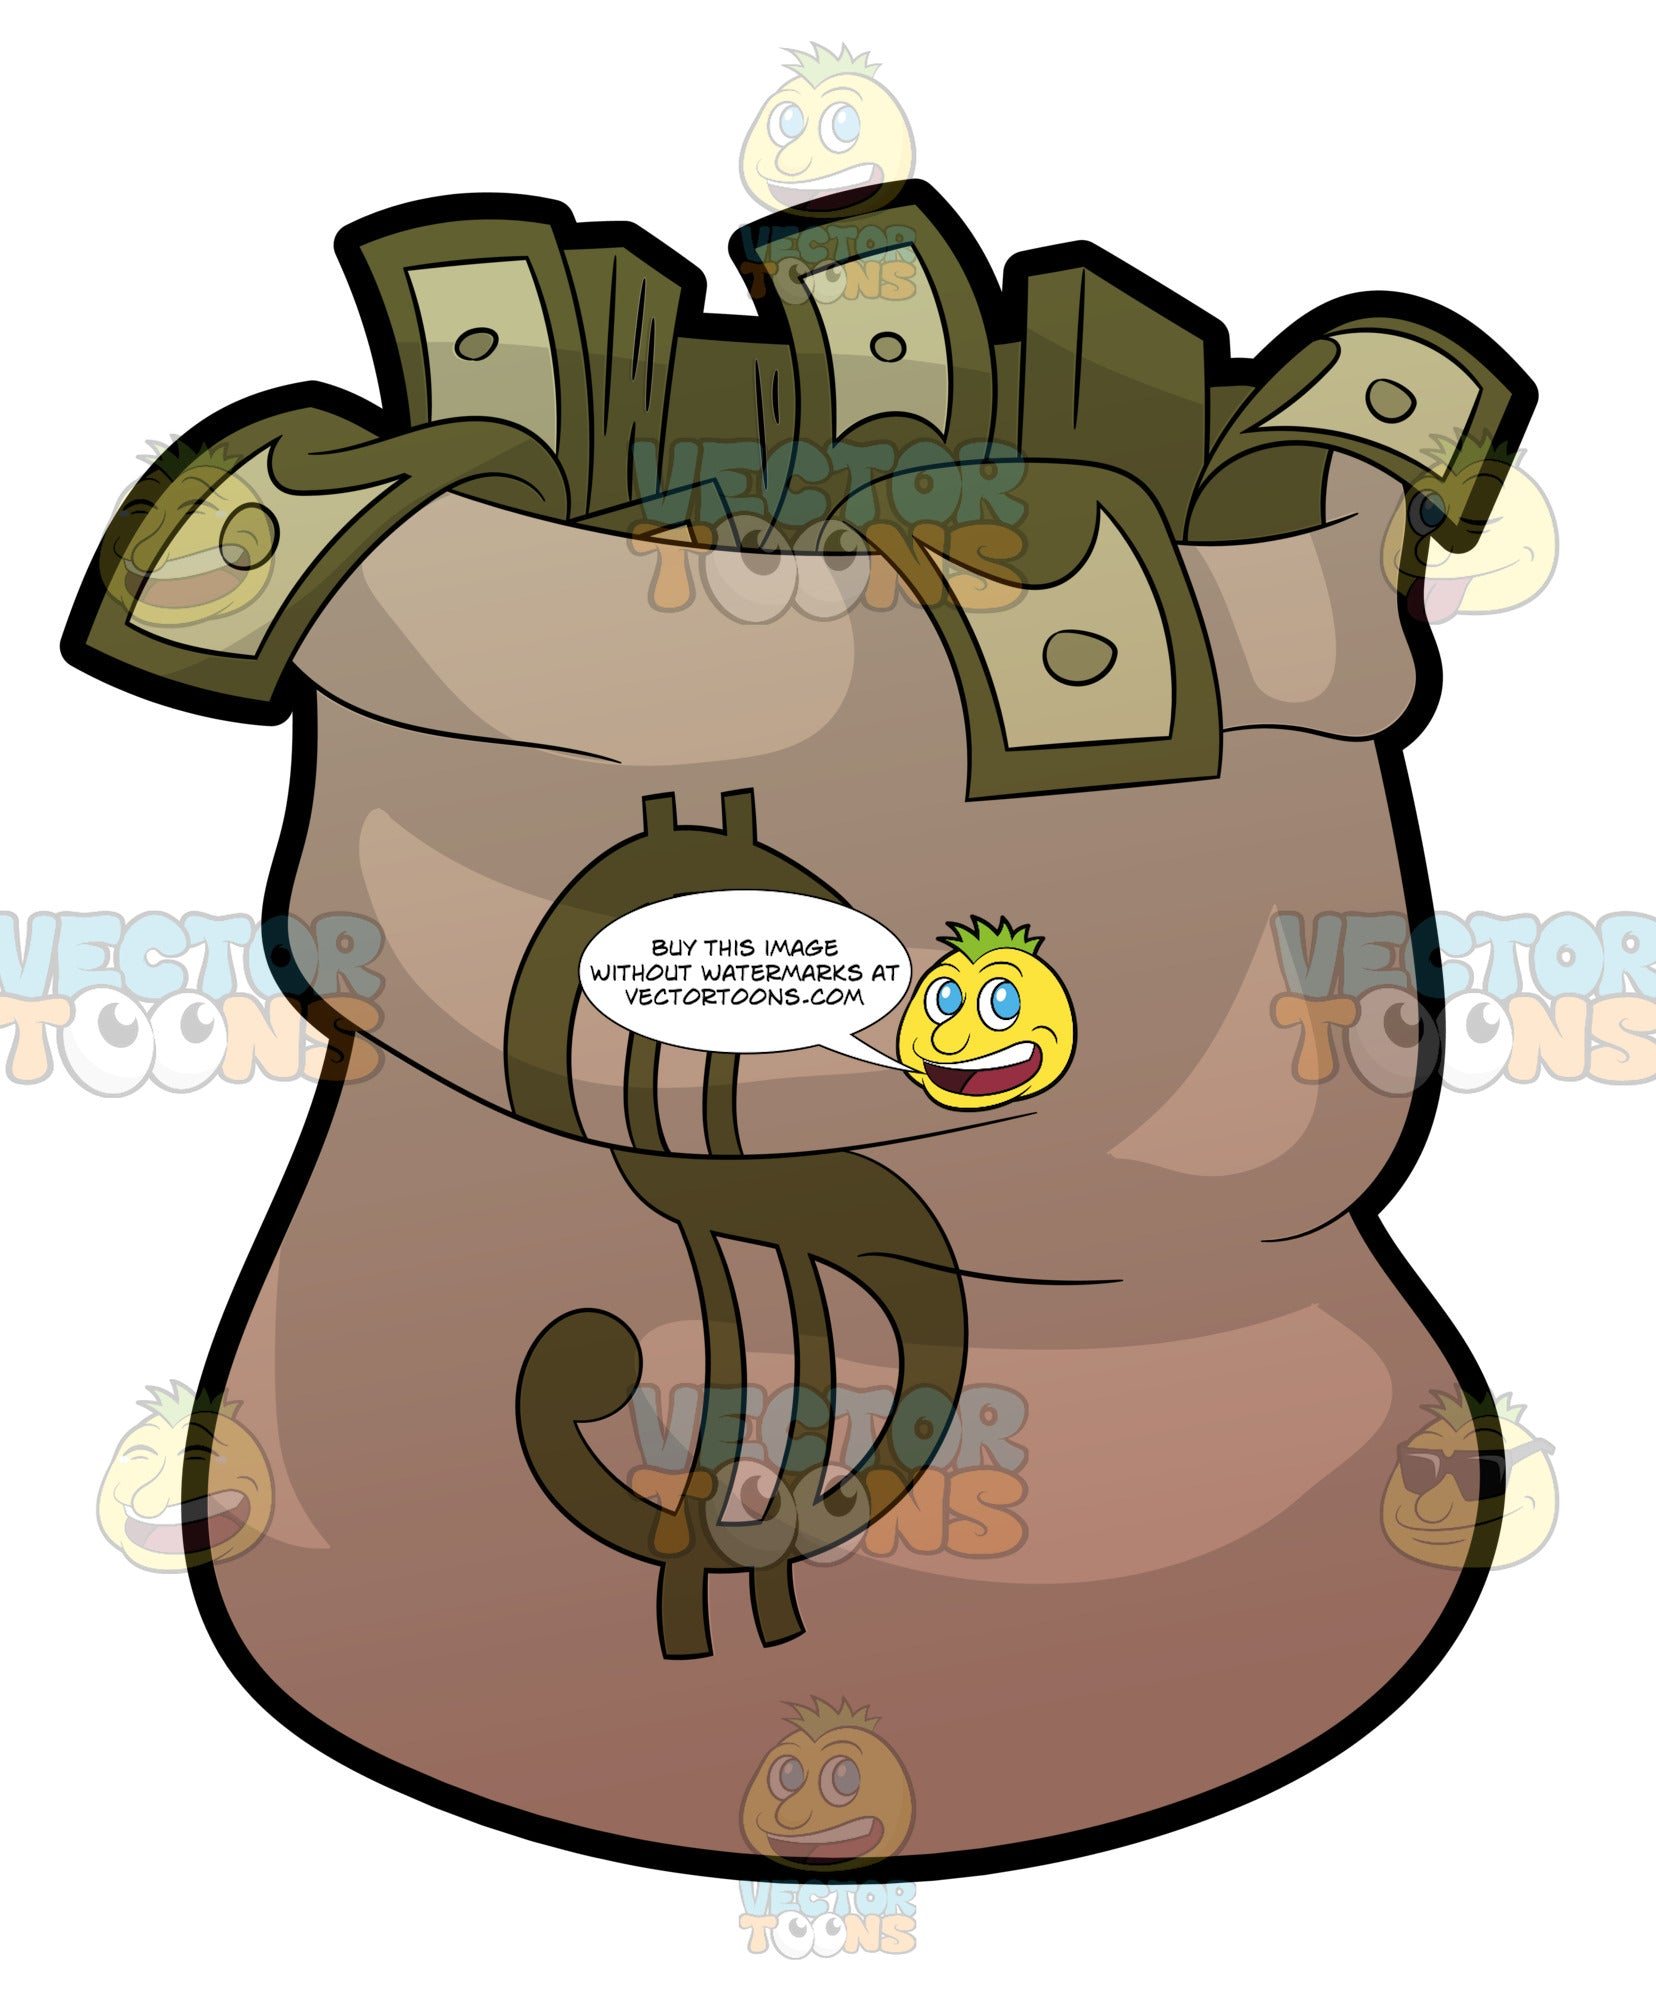 A Burlap Sack Full Of Money